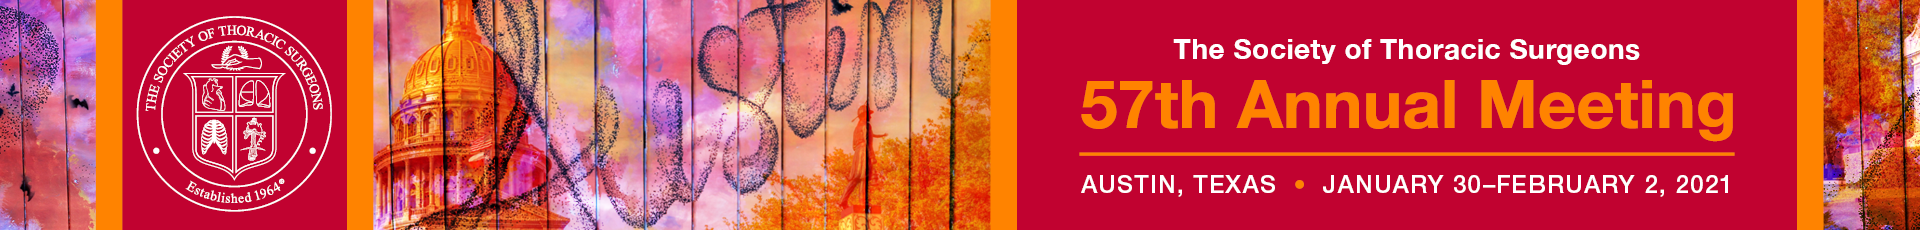 STS 57th Annual Meeting Event Banner